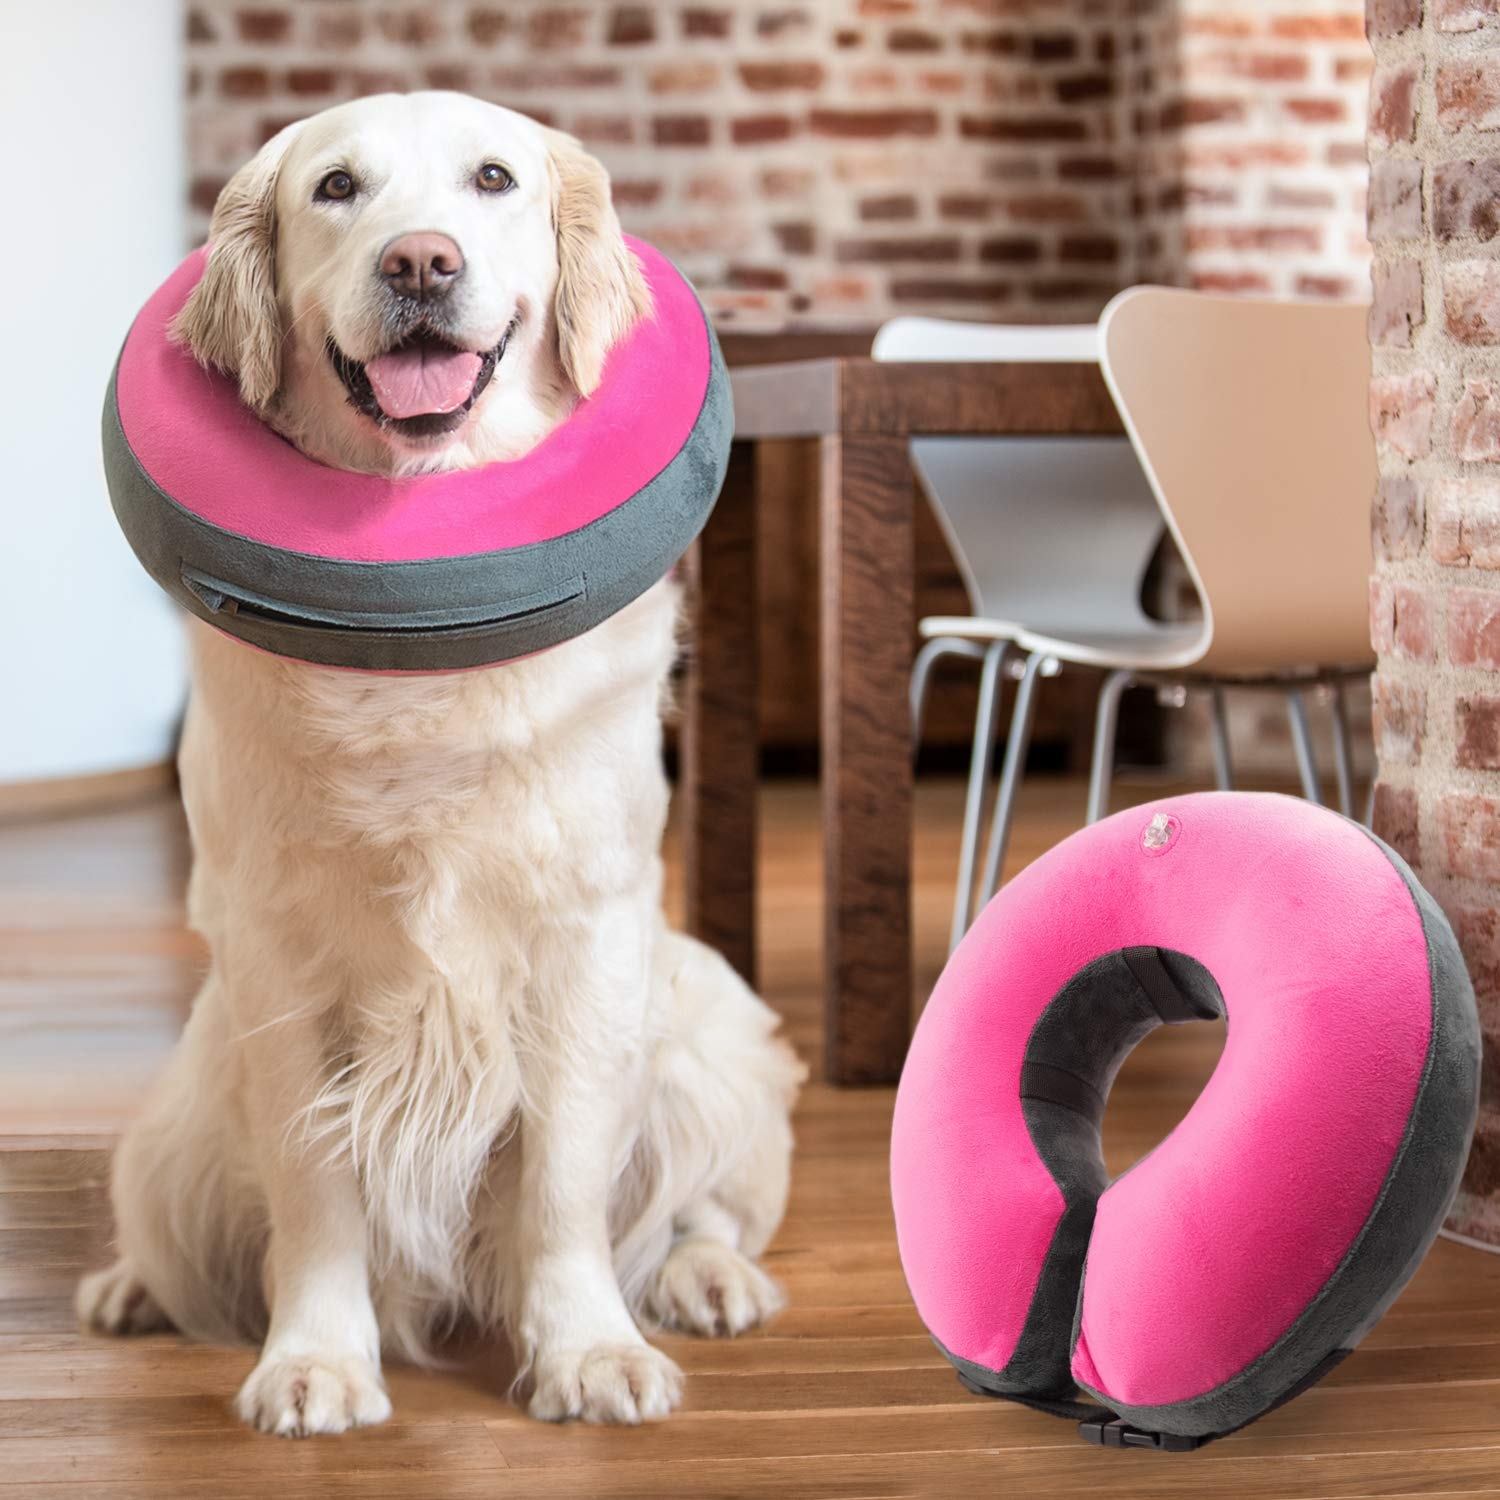 GoodBoy Comfortable Recovery E-Collar for Dogs and Cats - Soft Inflatable Donut Collar Designed for Protecting Small Medium or Large Pets Post Surgery or Wounds by GoodBoy